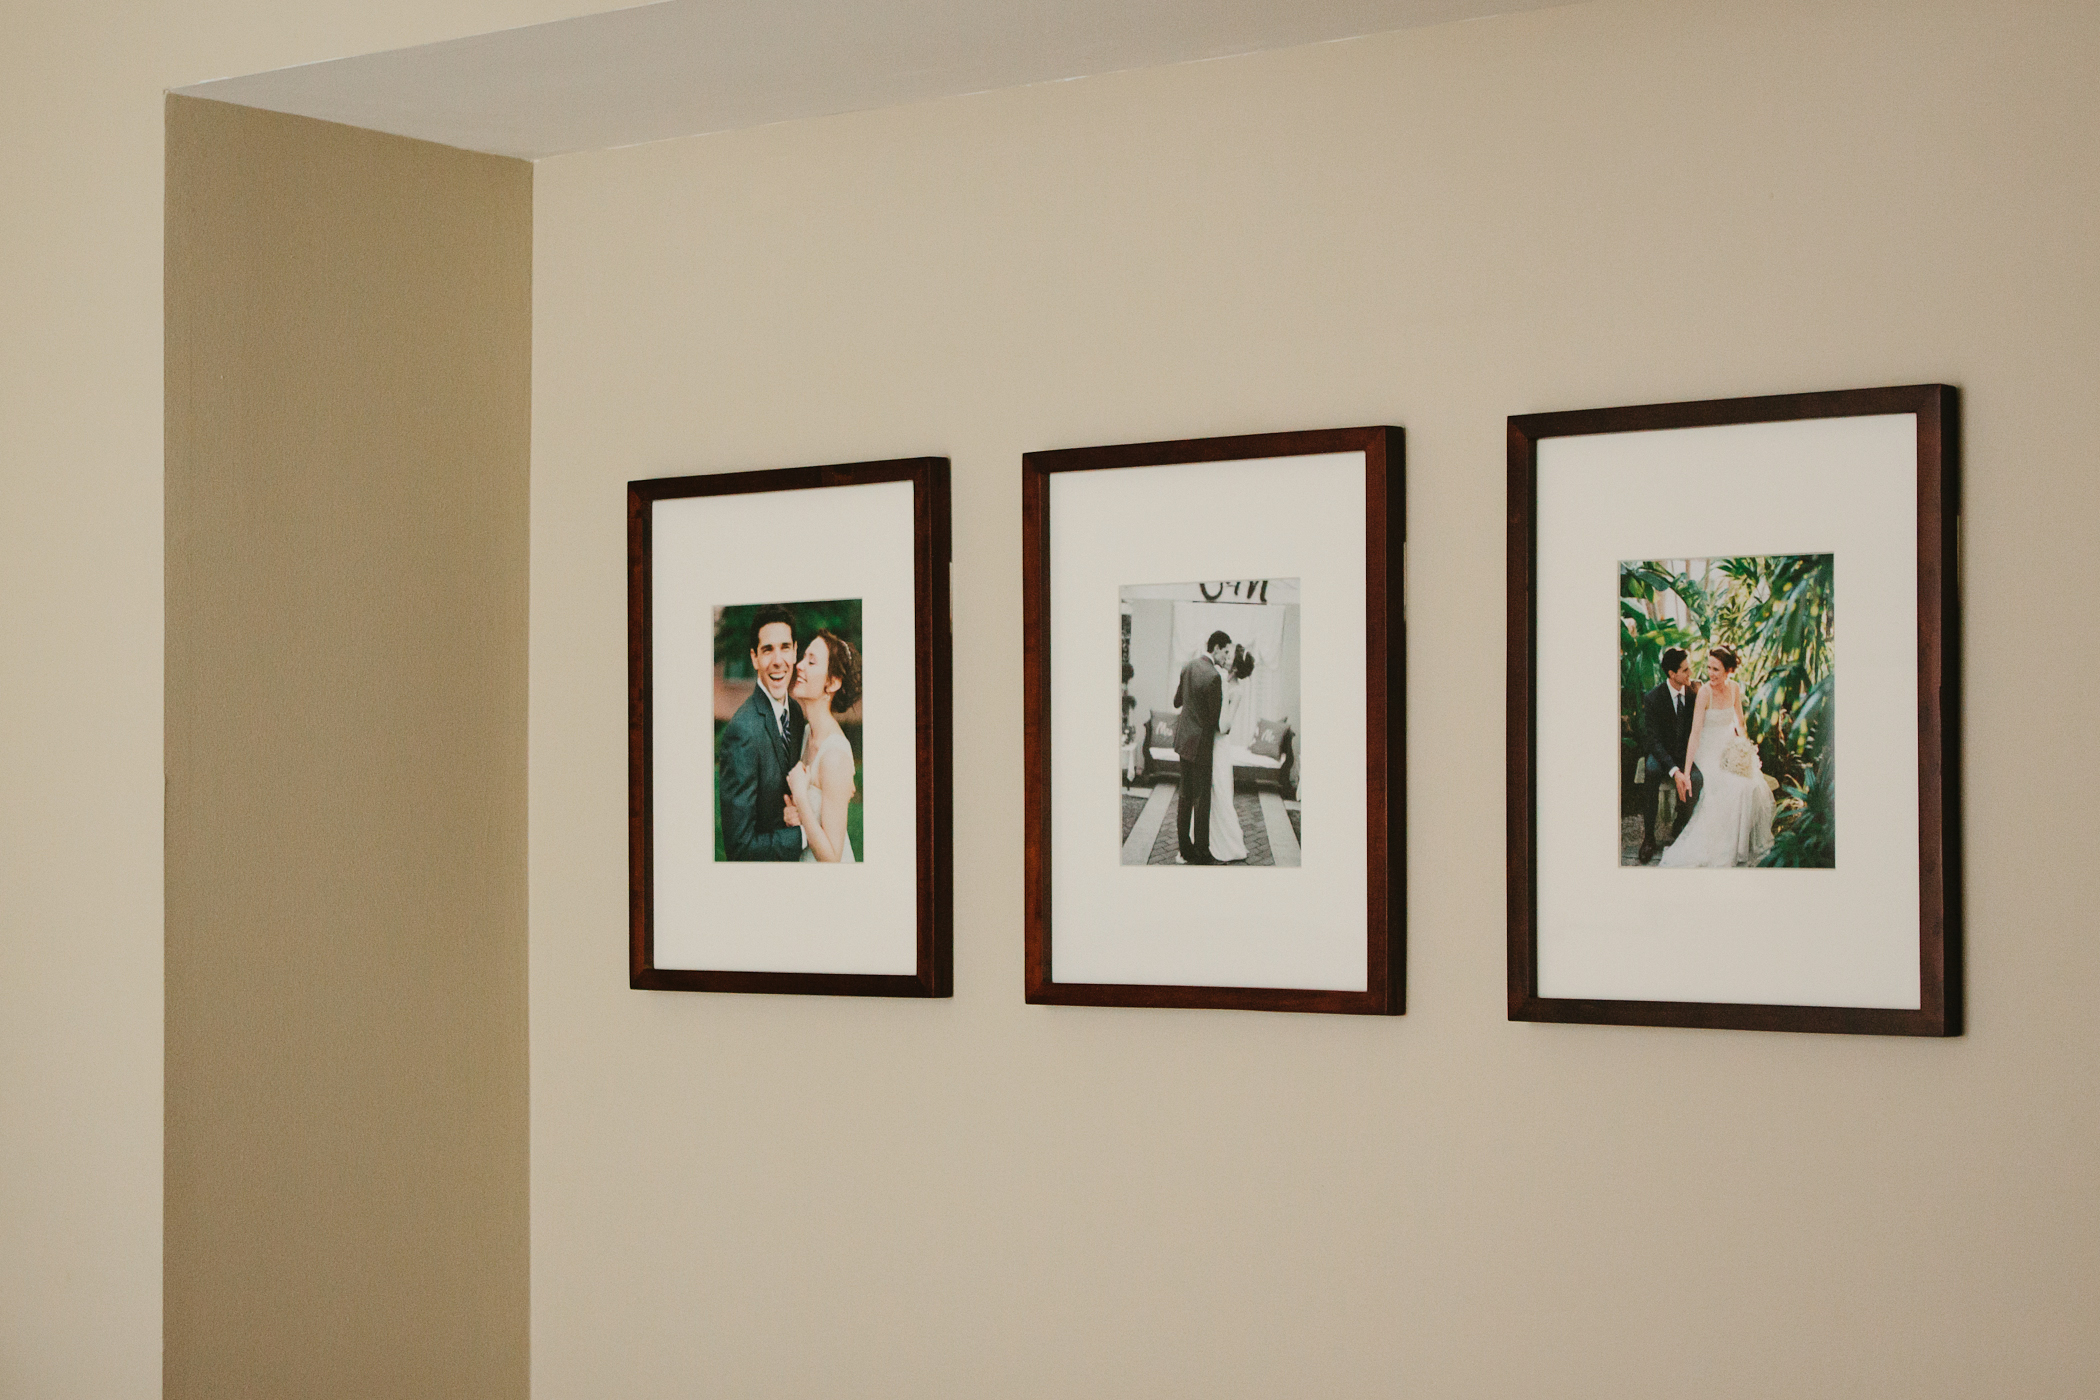 Displaying Personal Pictures in Your Home